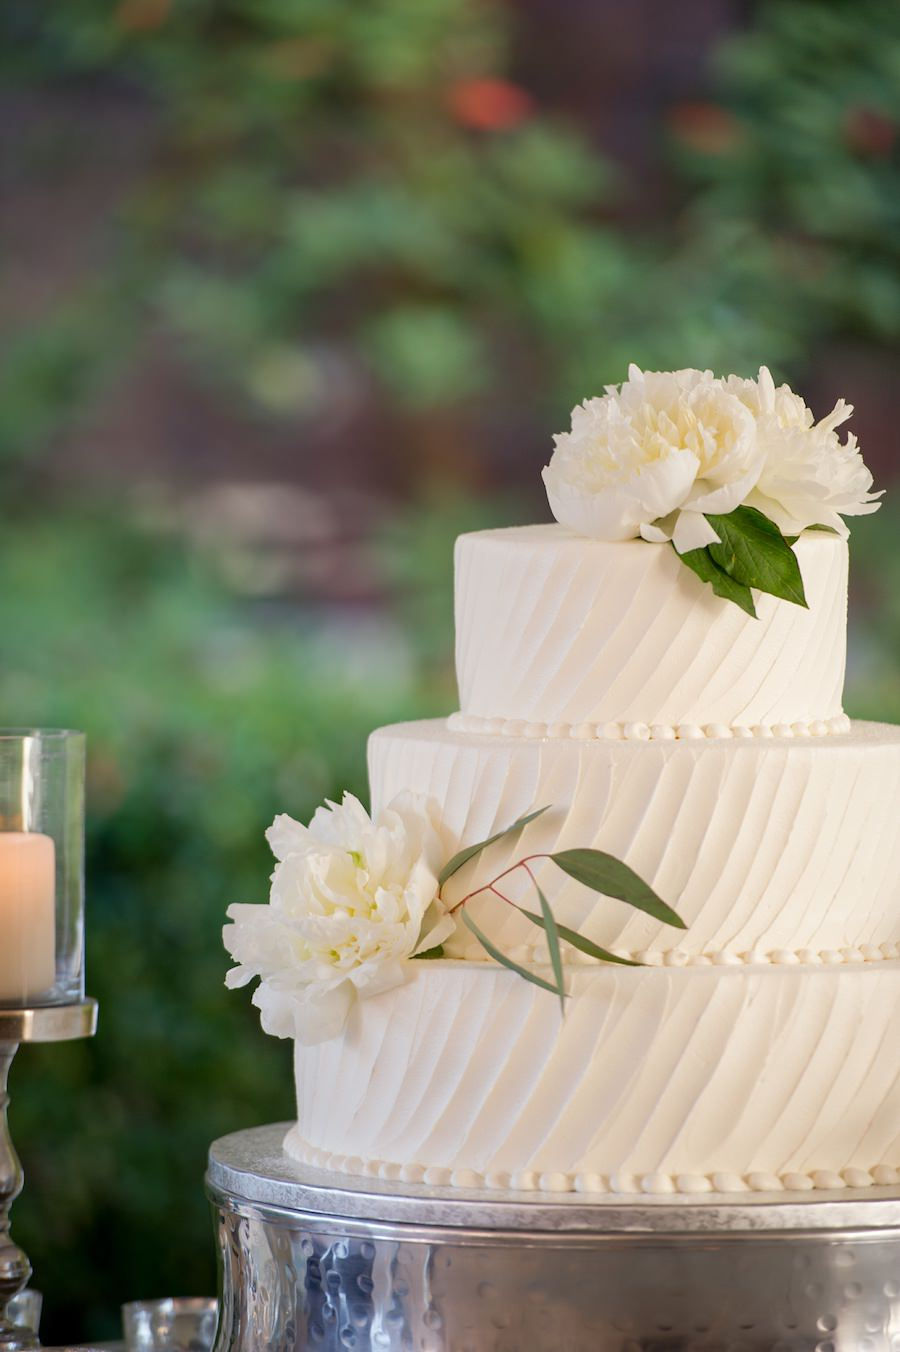 Three Tiered, Ivory, Round Wedding Cake with White Peony Accent Flowers